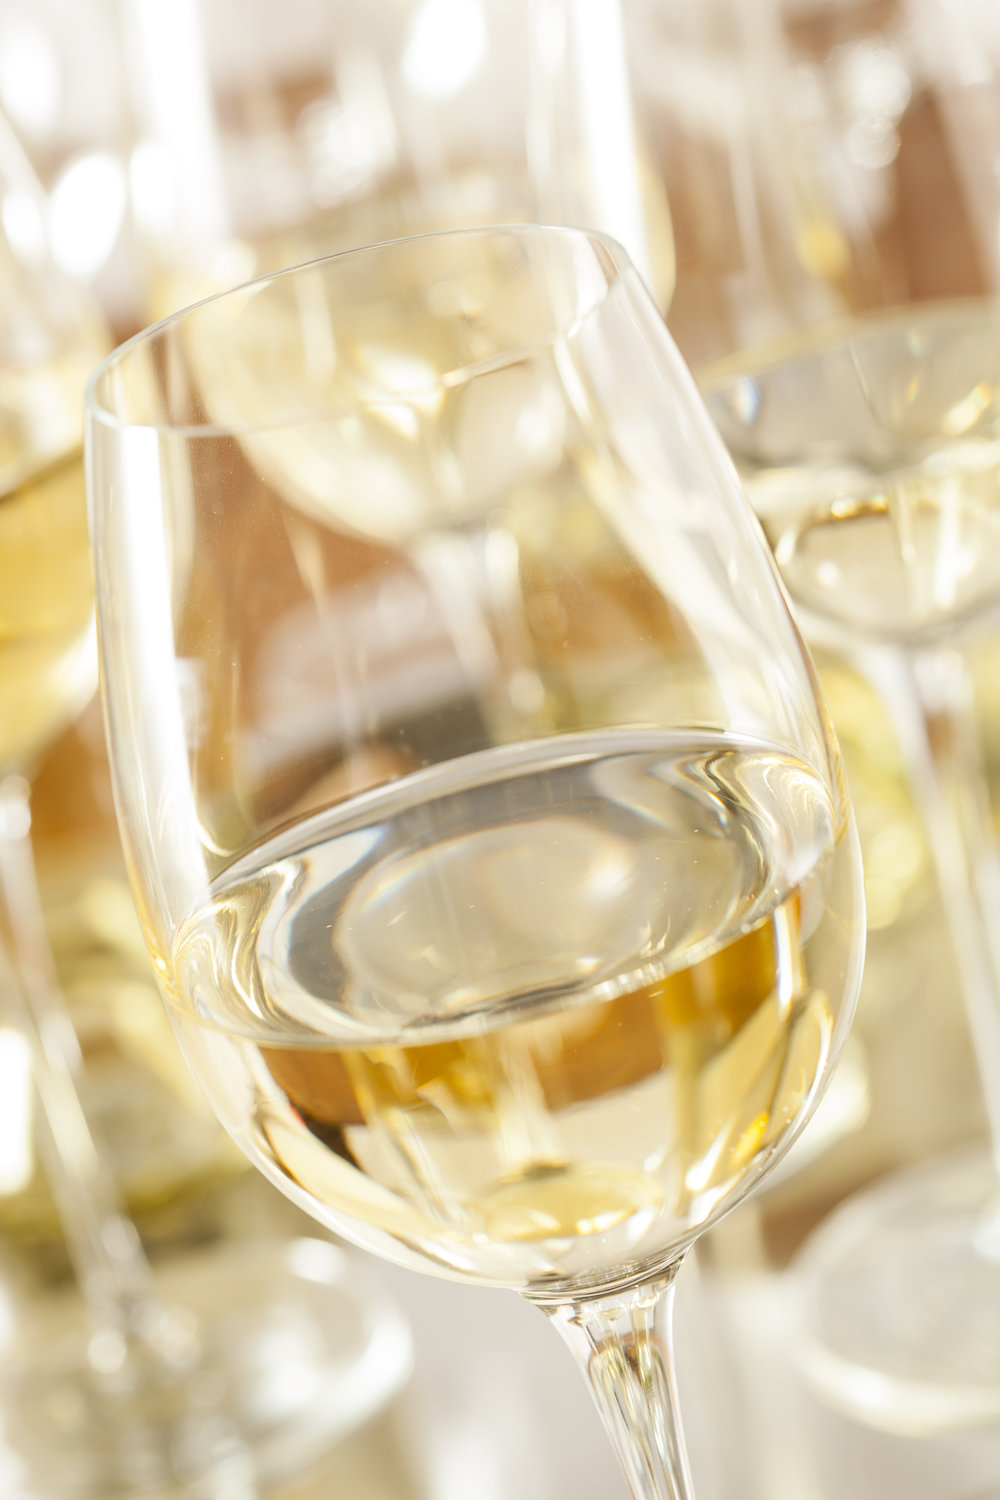 Refreshing White Wine in a Glass on a Background.jpg